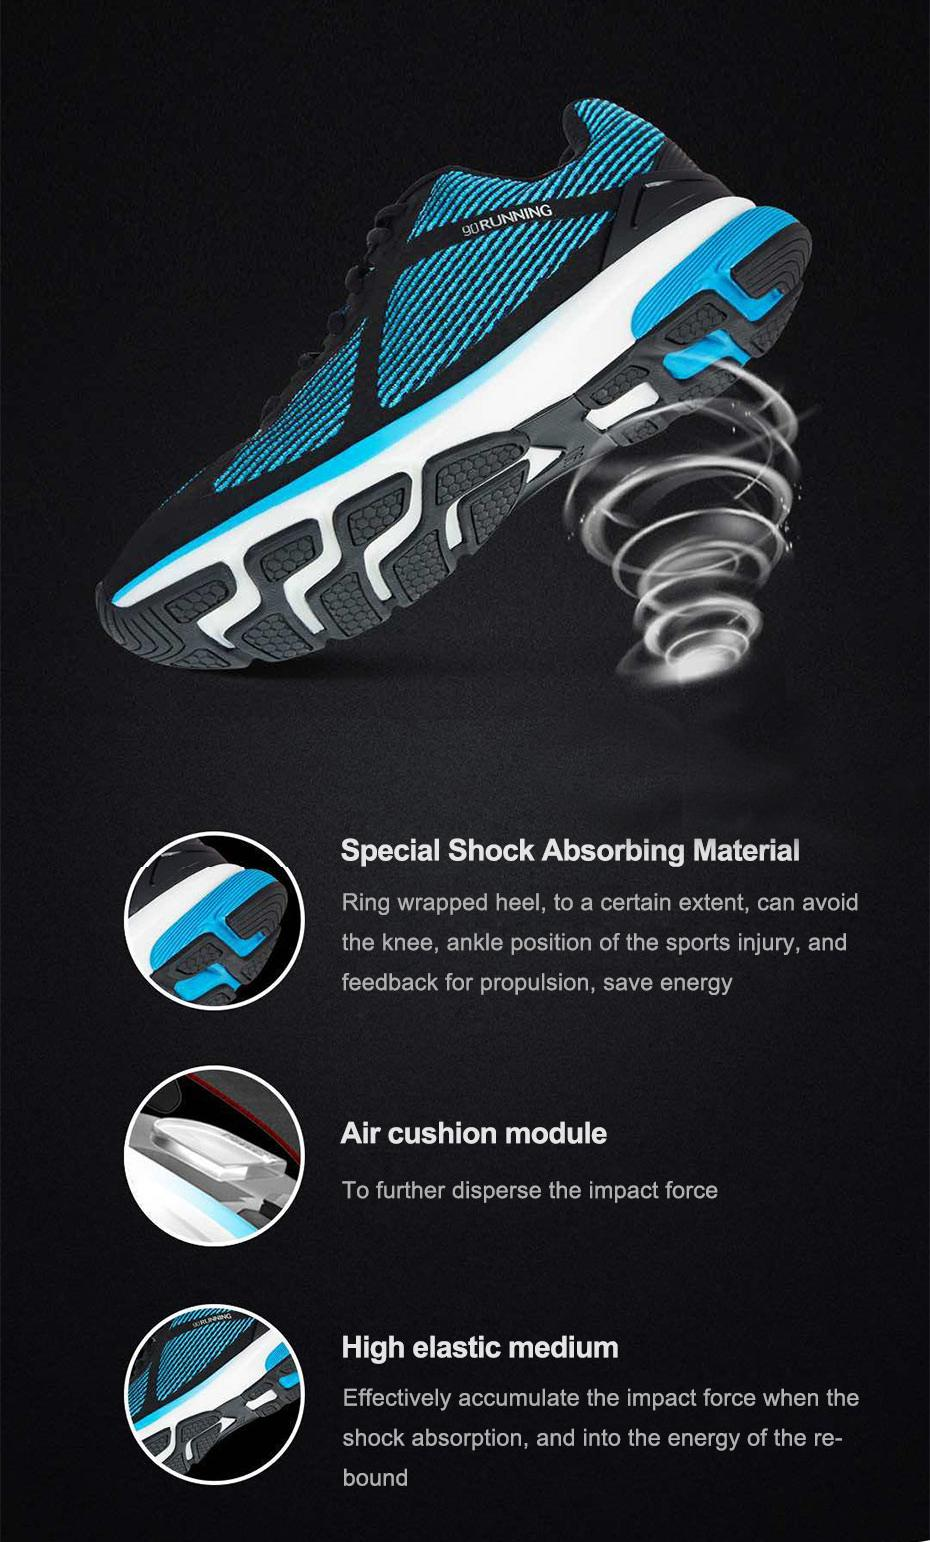 XIAOMI 90 Men Sports Shoes Point Ultra Smart Intel Curie Chipset Breathe Shock Absorption